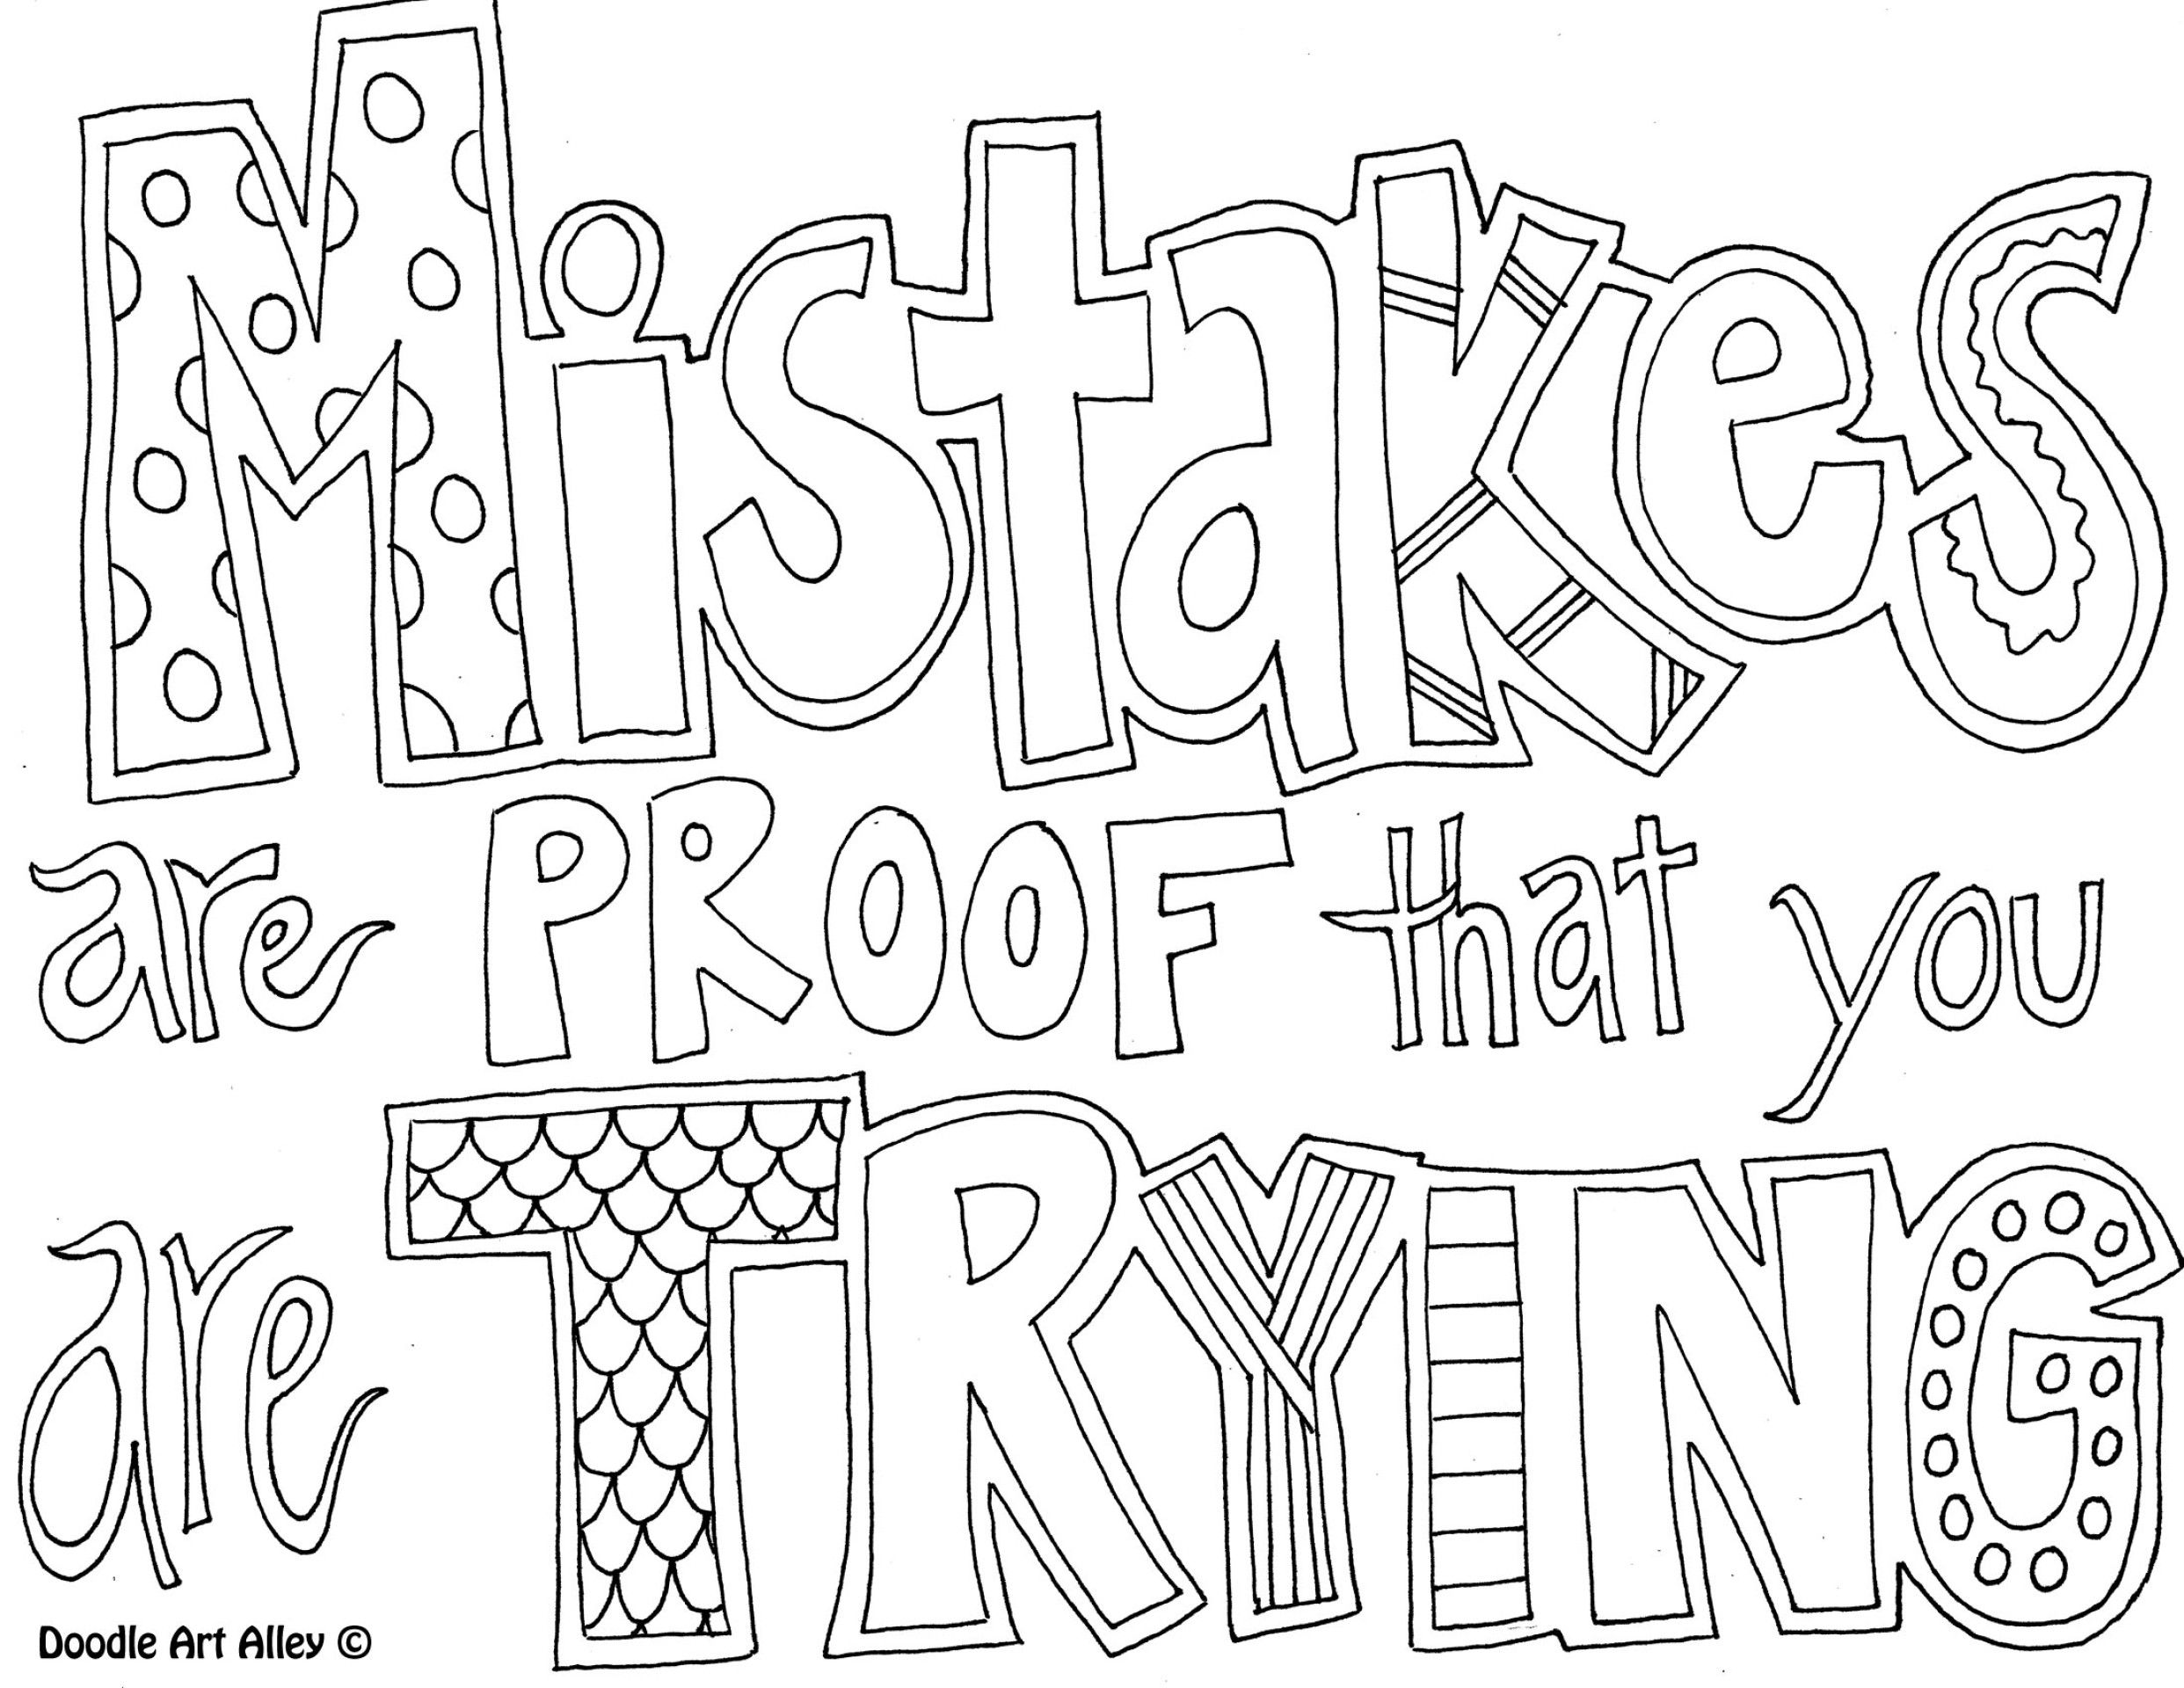 Coloring Page Mistakes Are Proof That You Are Trying 8th